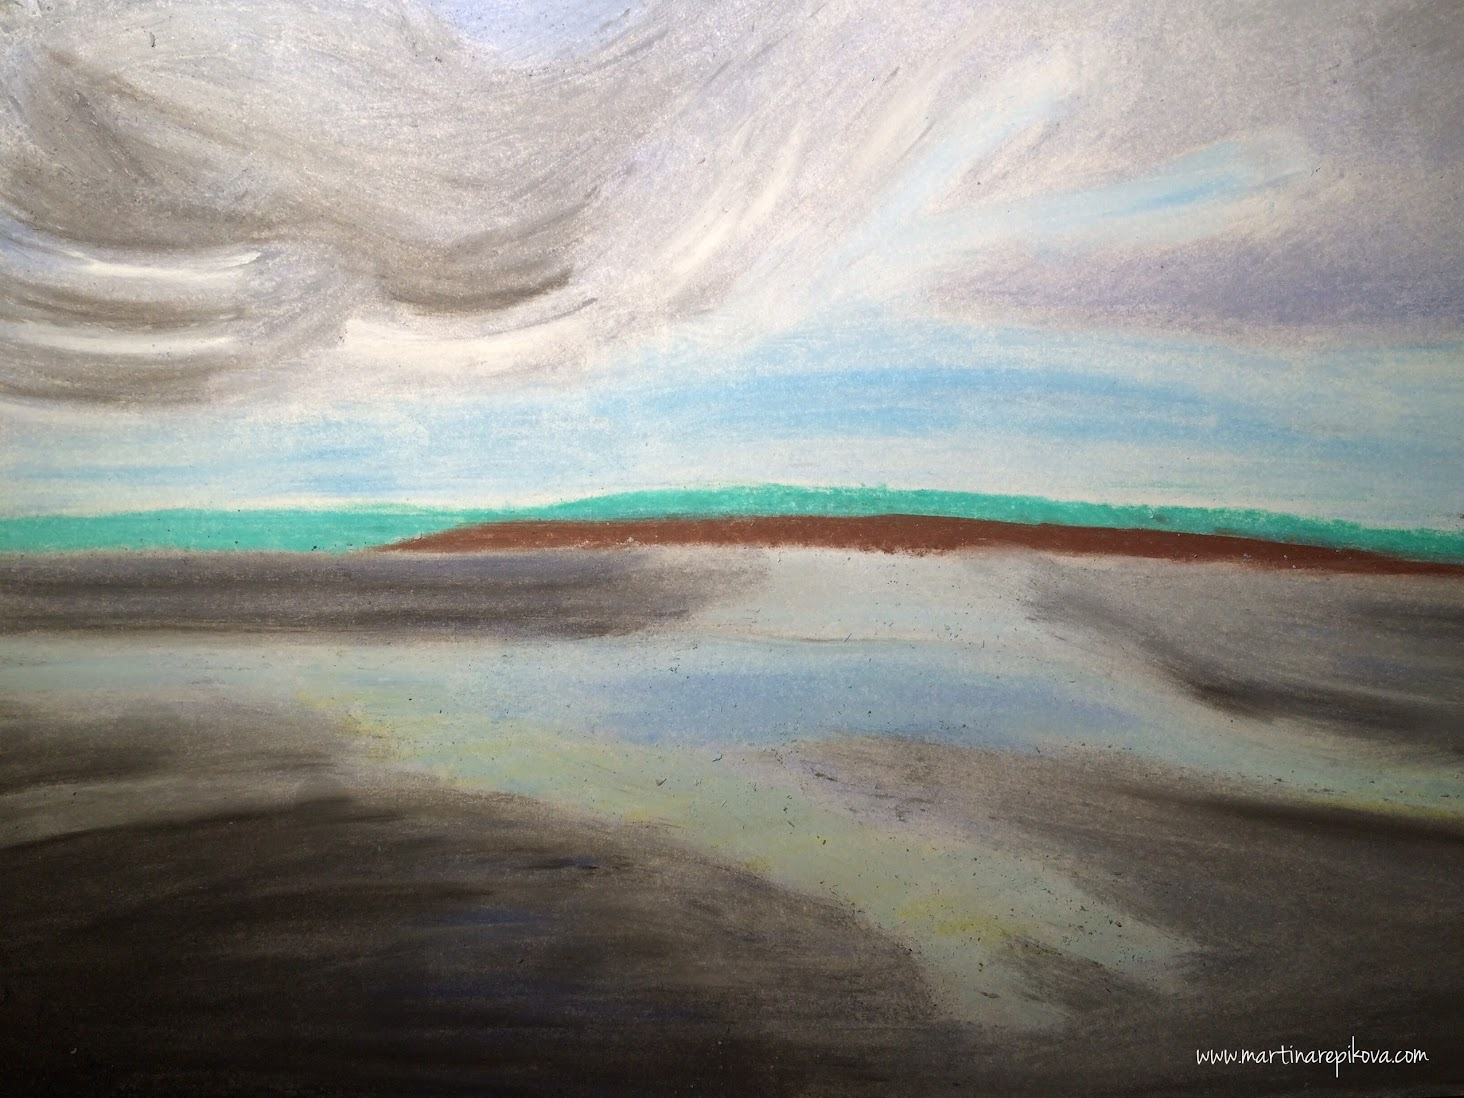 Orava dam before a storm, Slovakia (a pastel drawing)